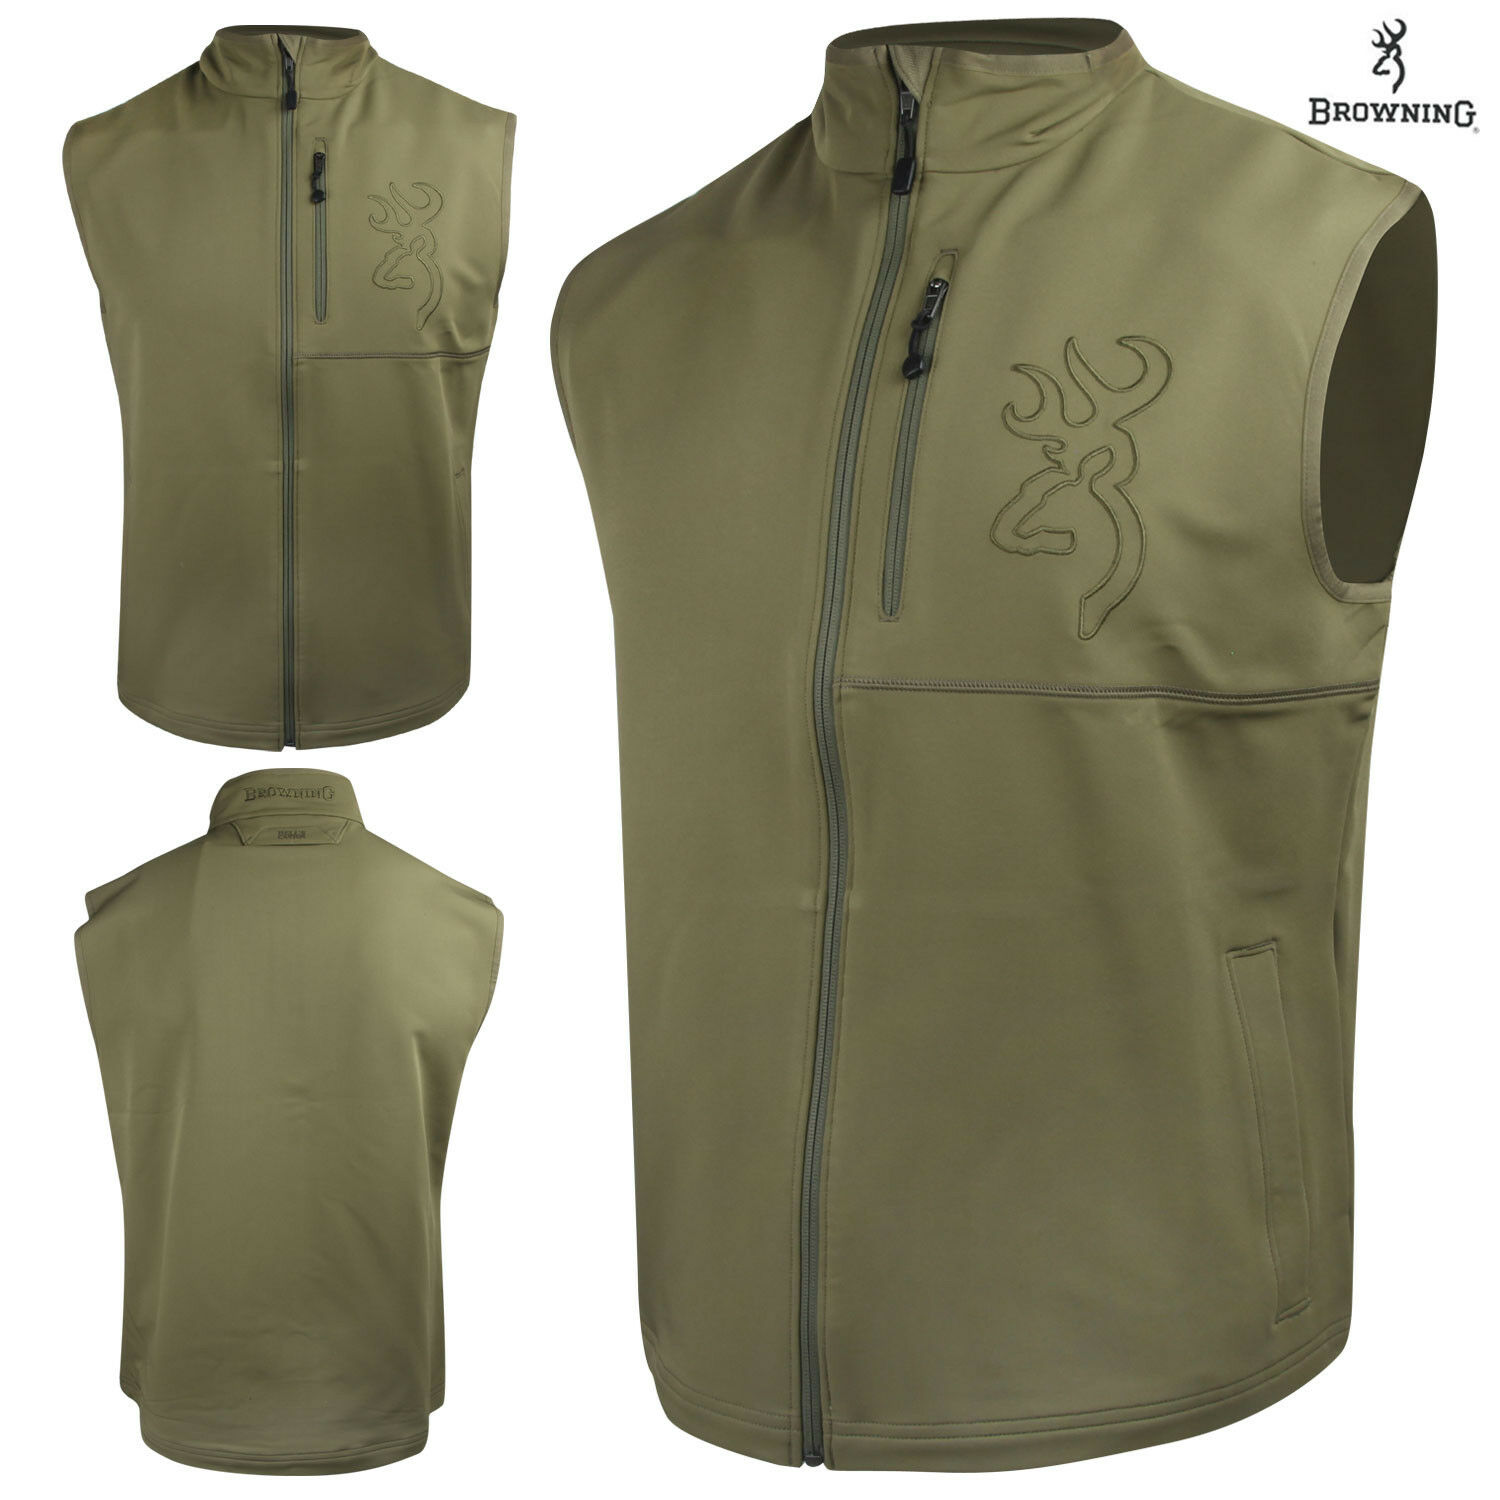 Browning Hell's Canyon  Mercury Vest (M)- Capers  stadium giveaways